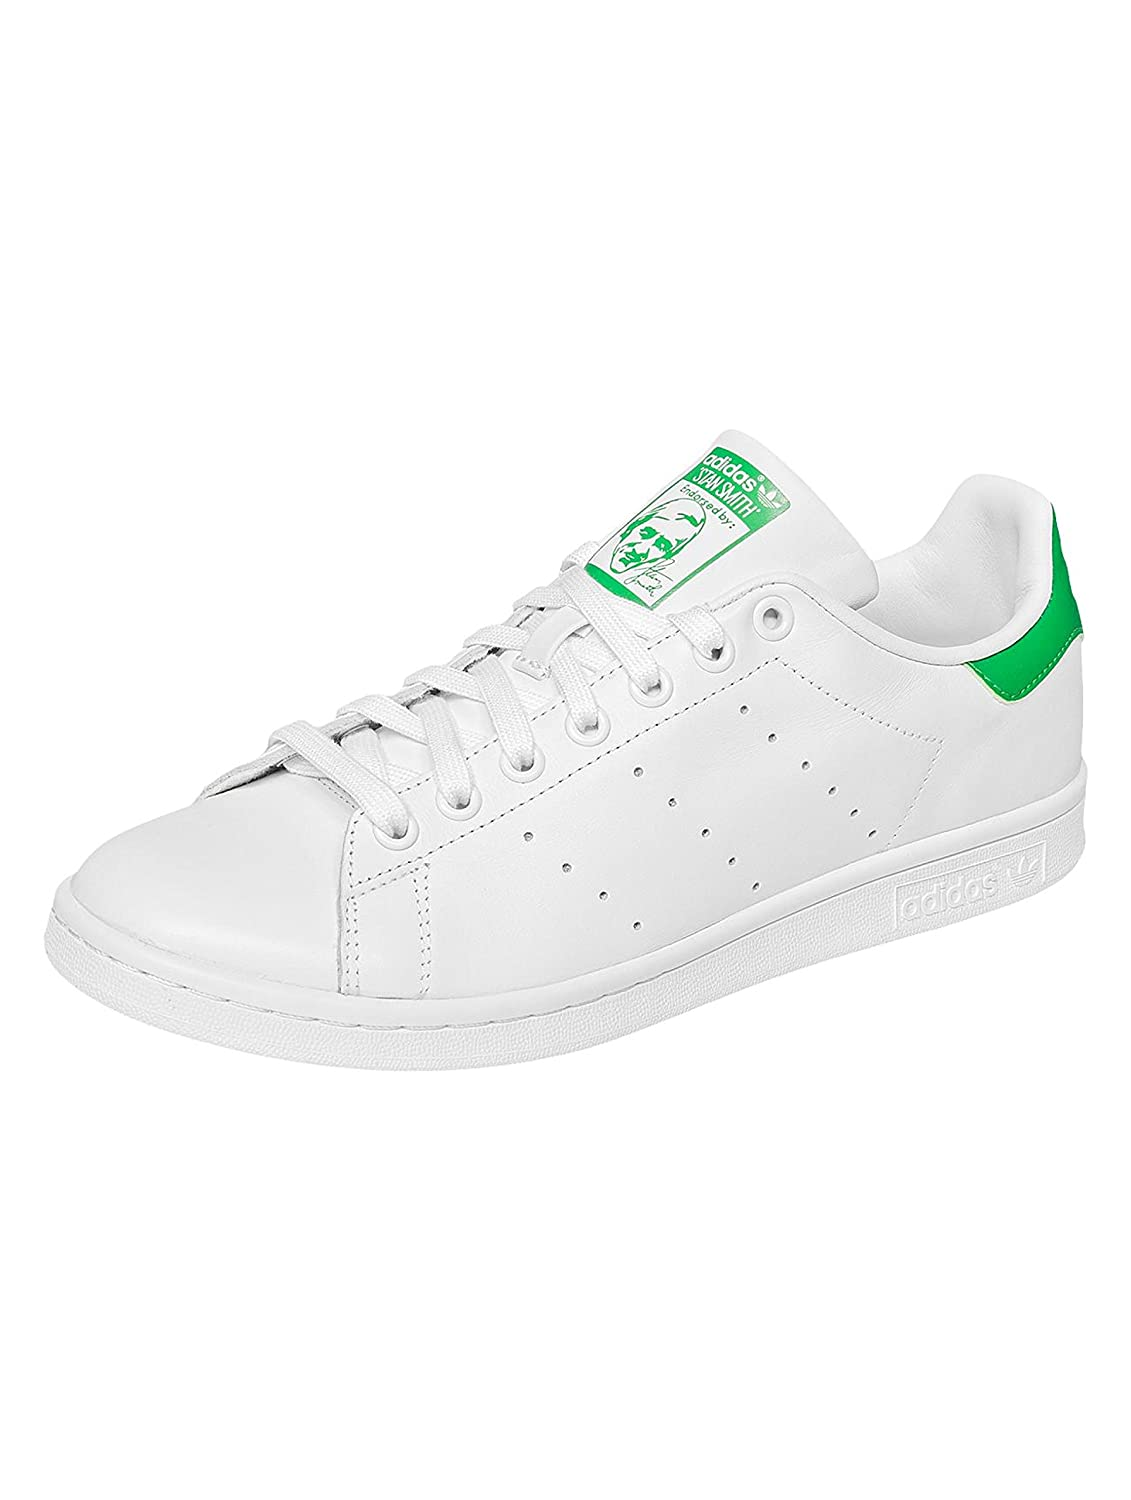 Adidas Stan Smith, Chaussures Homme Homme Chaussures - B07J9LVXSR - Baskets mode 87299e